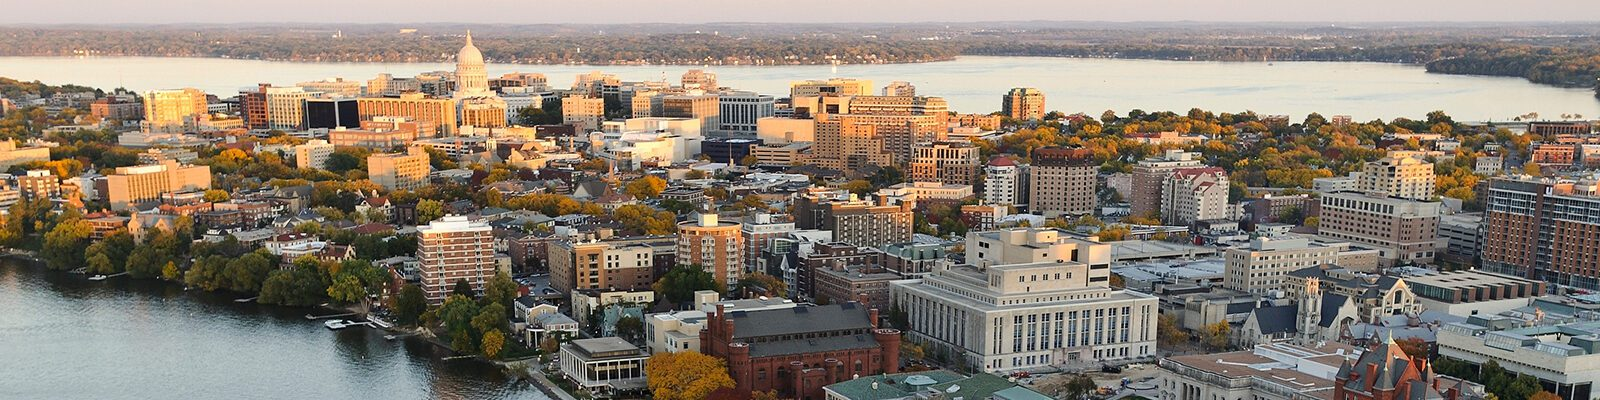 The Lake Mendota shoreline is pictured in an aerial view of the University of Wisconsin-Madison campus looking toward the downtown Madison skyline during an autumn sunset